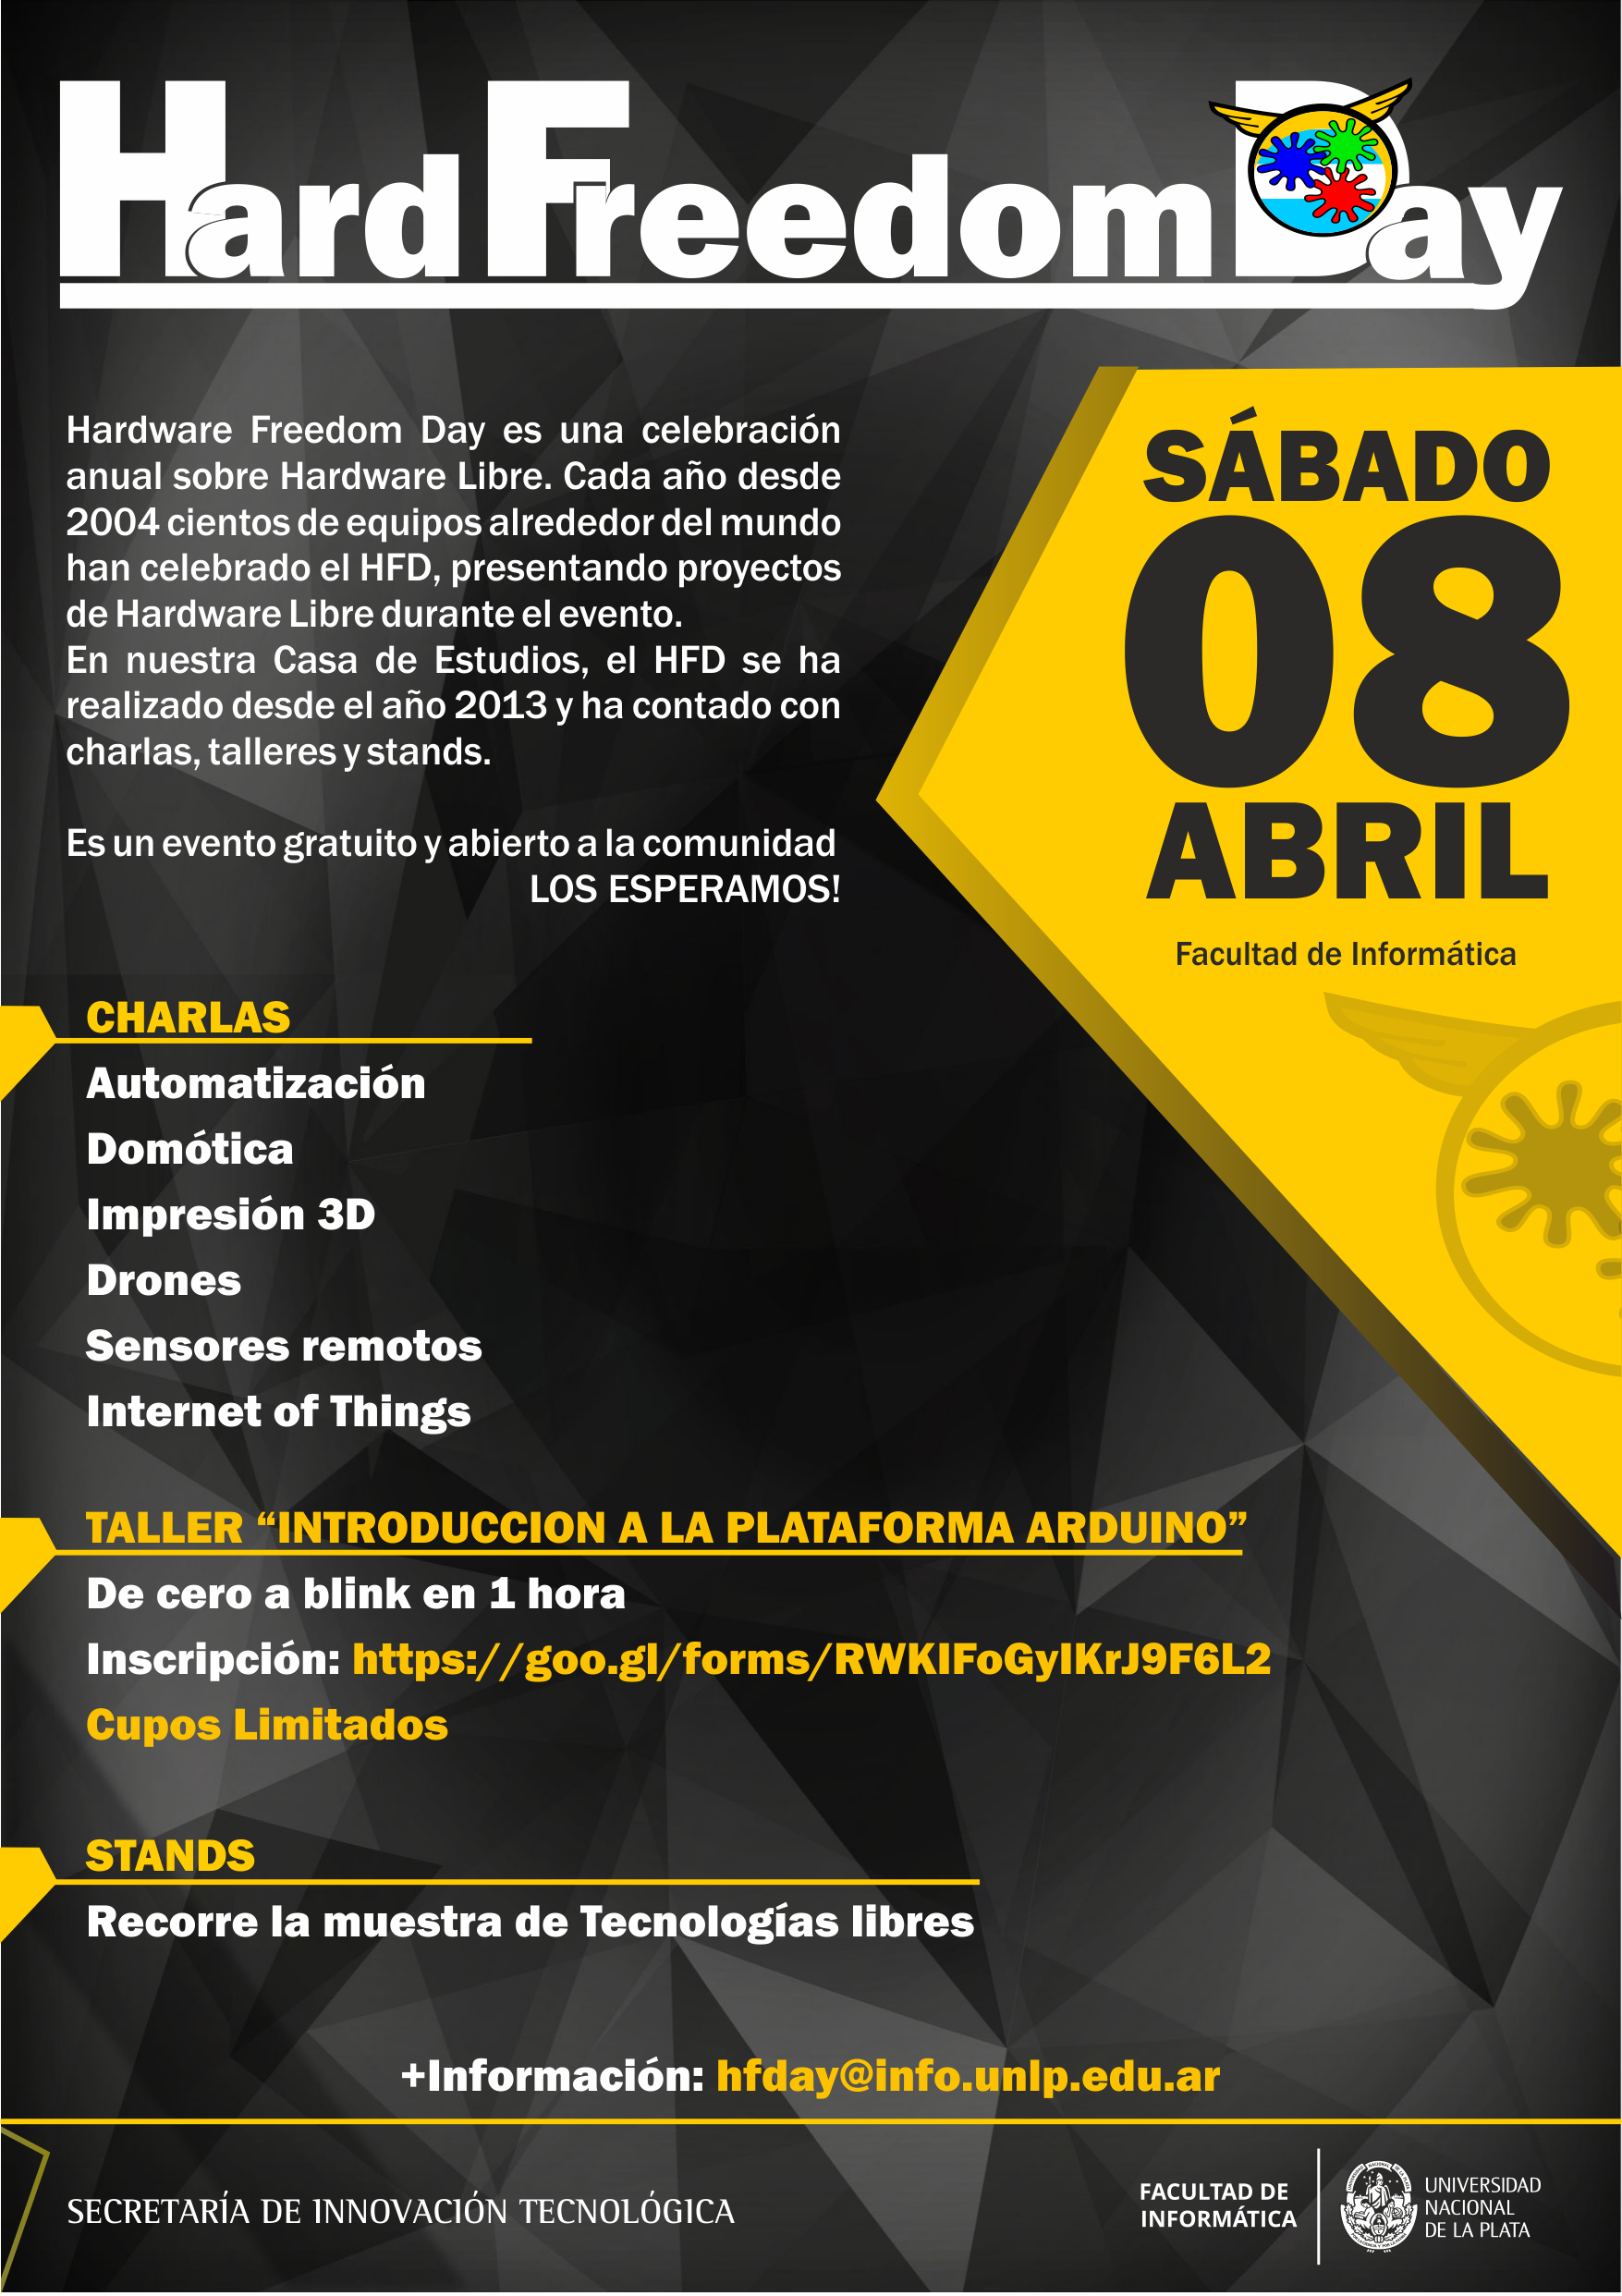 Jornada de Hardware Freedom Day 2017